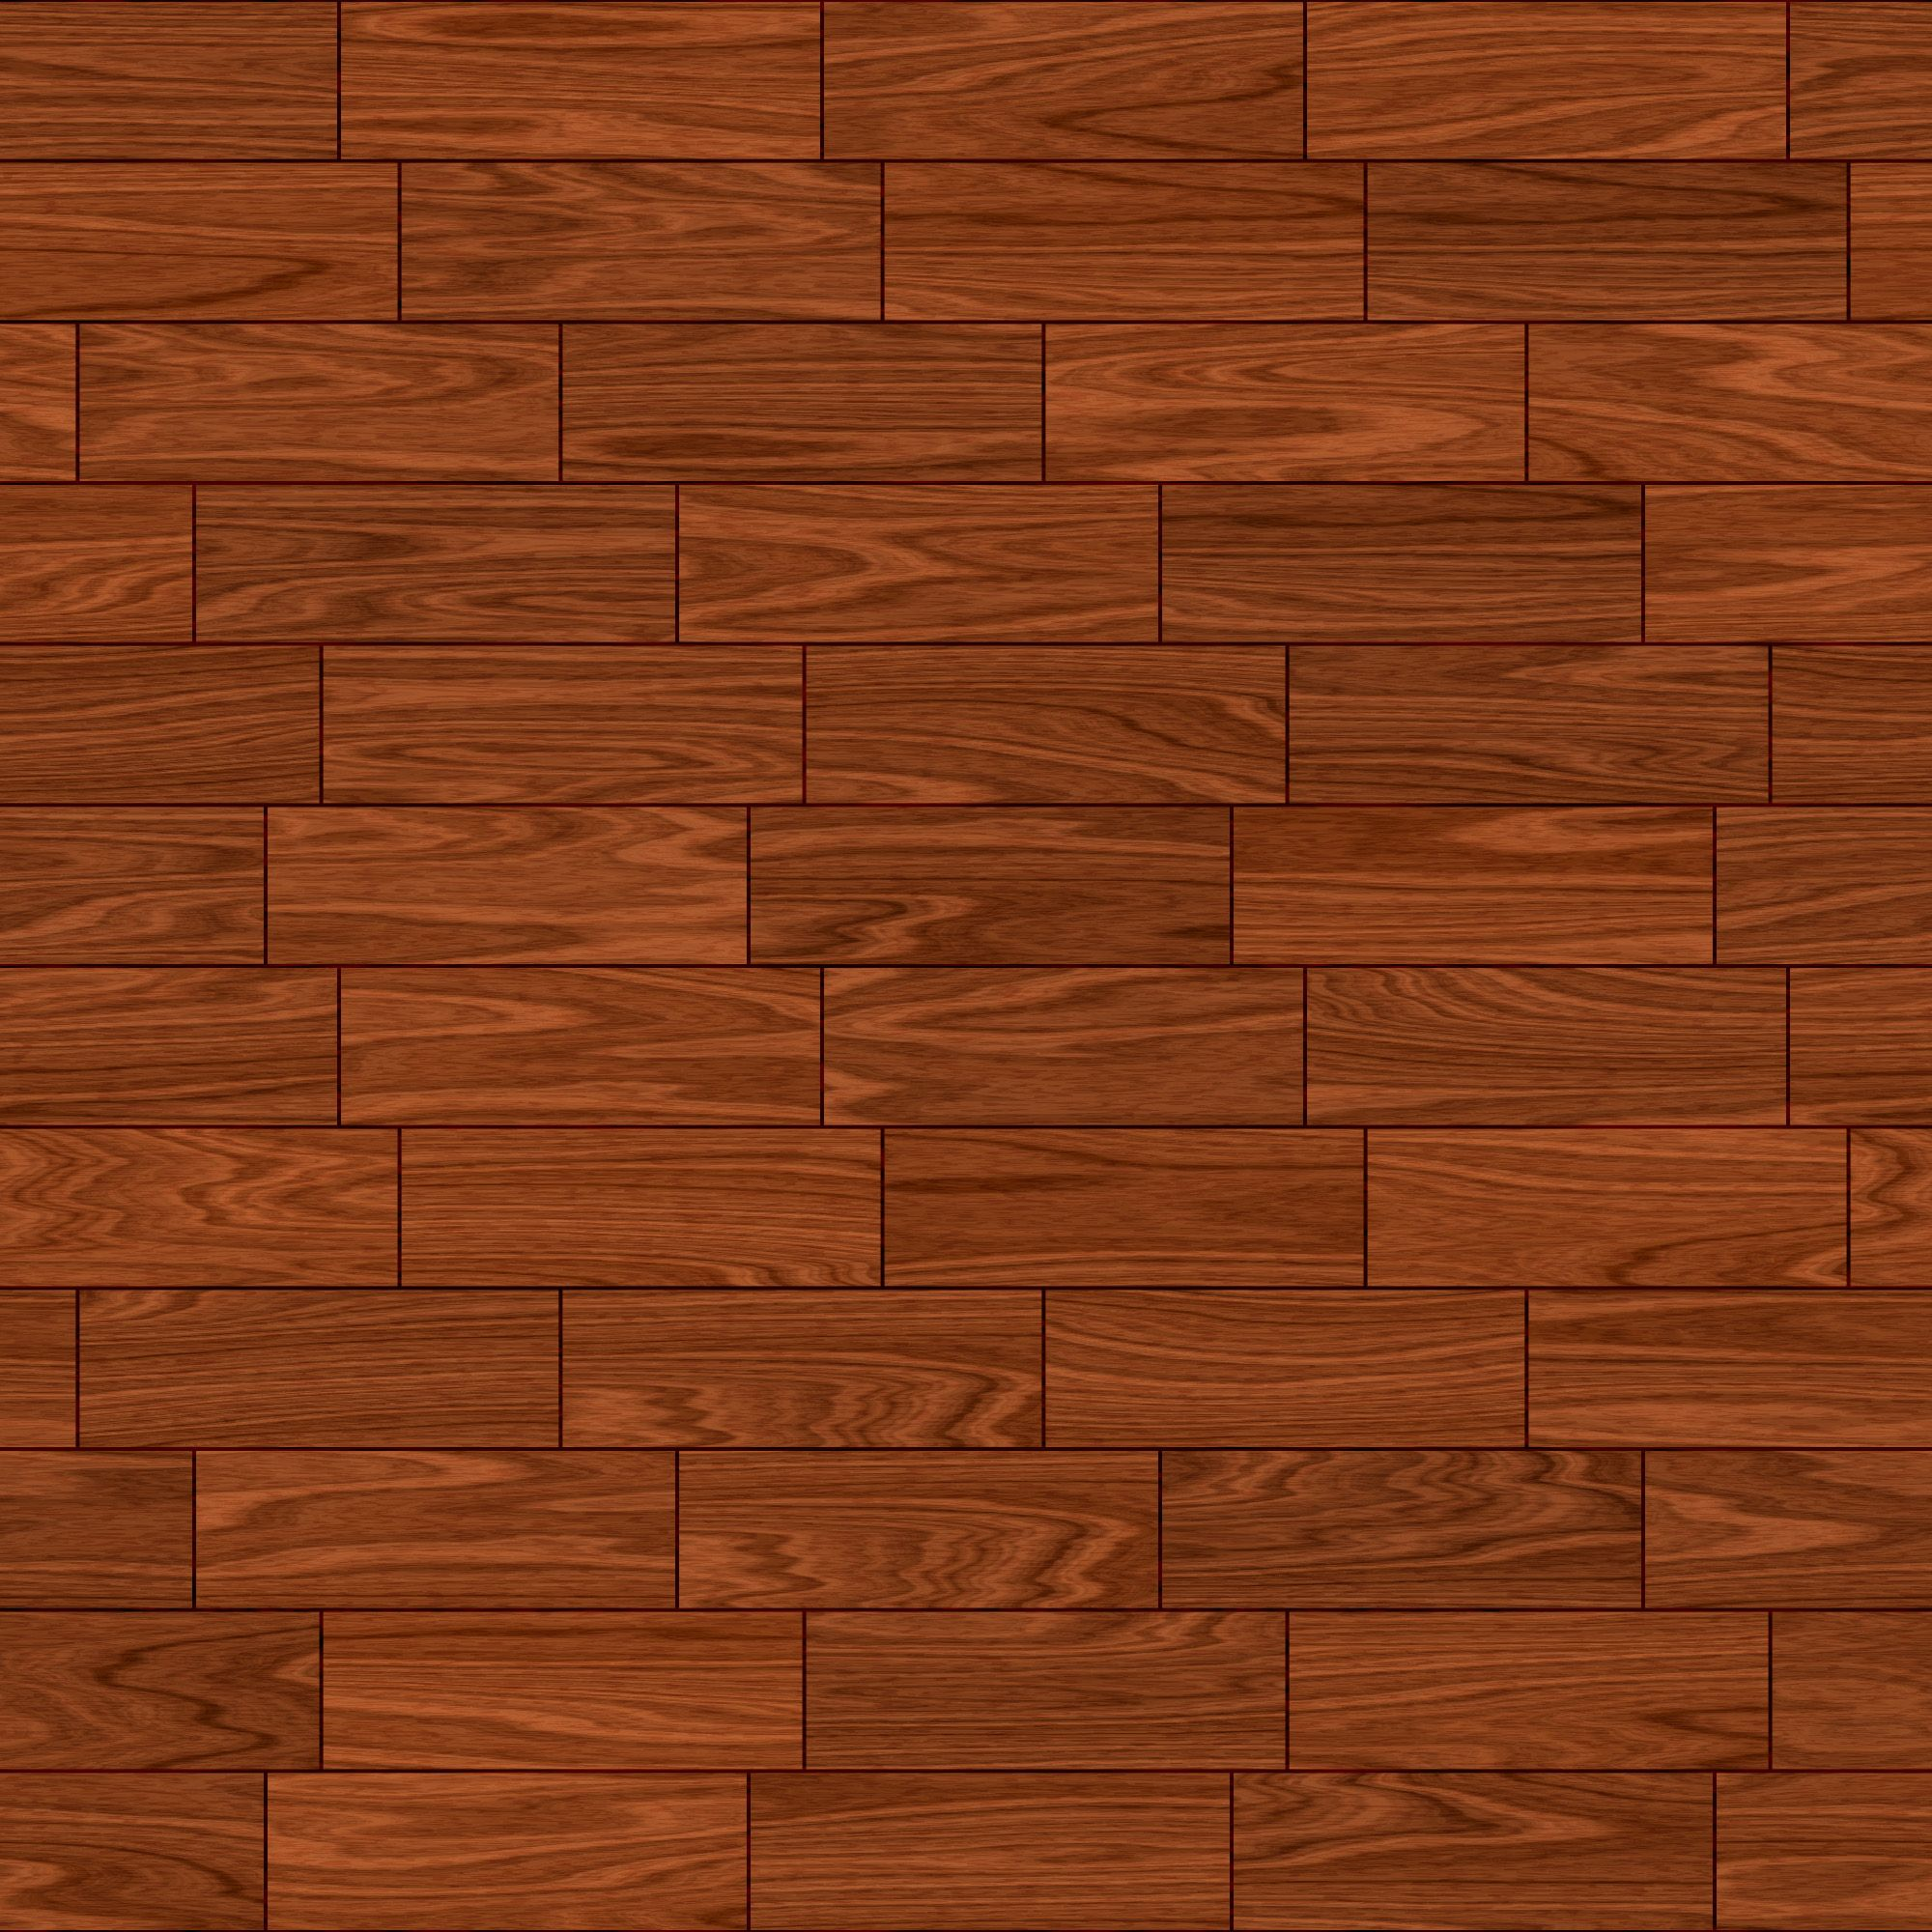 Wood Floor Texture Seamless Rich Wood Patterns Http